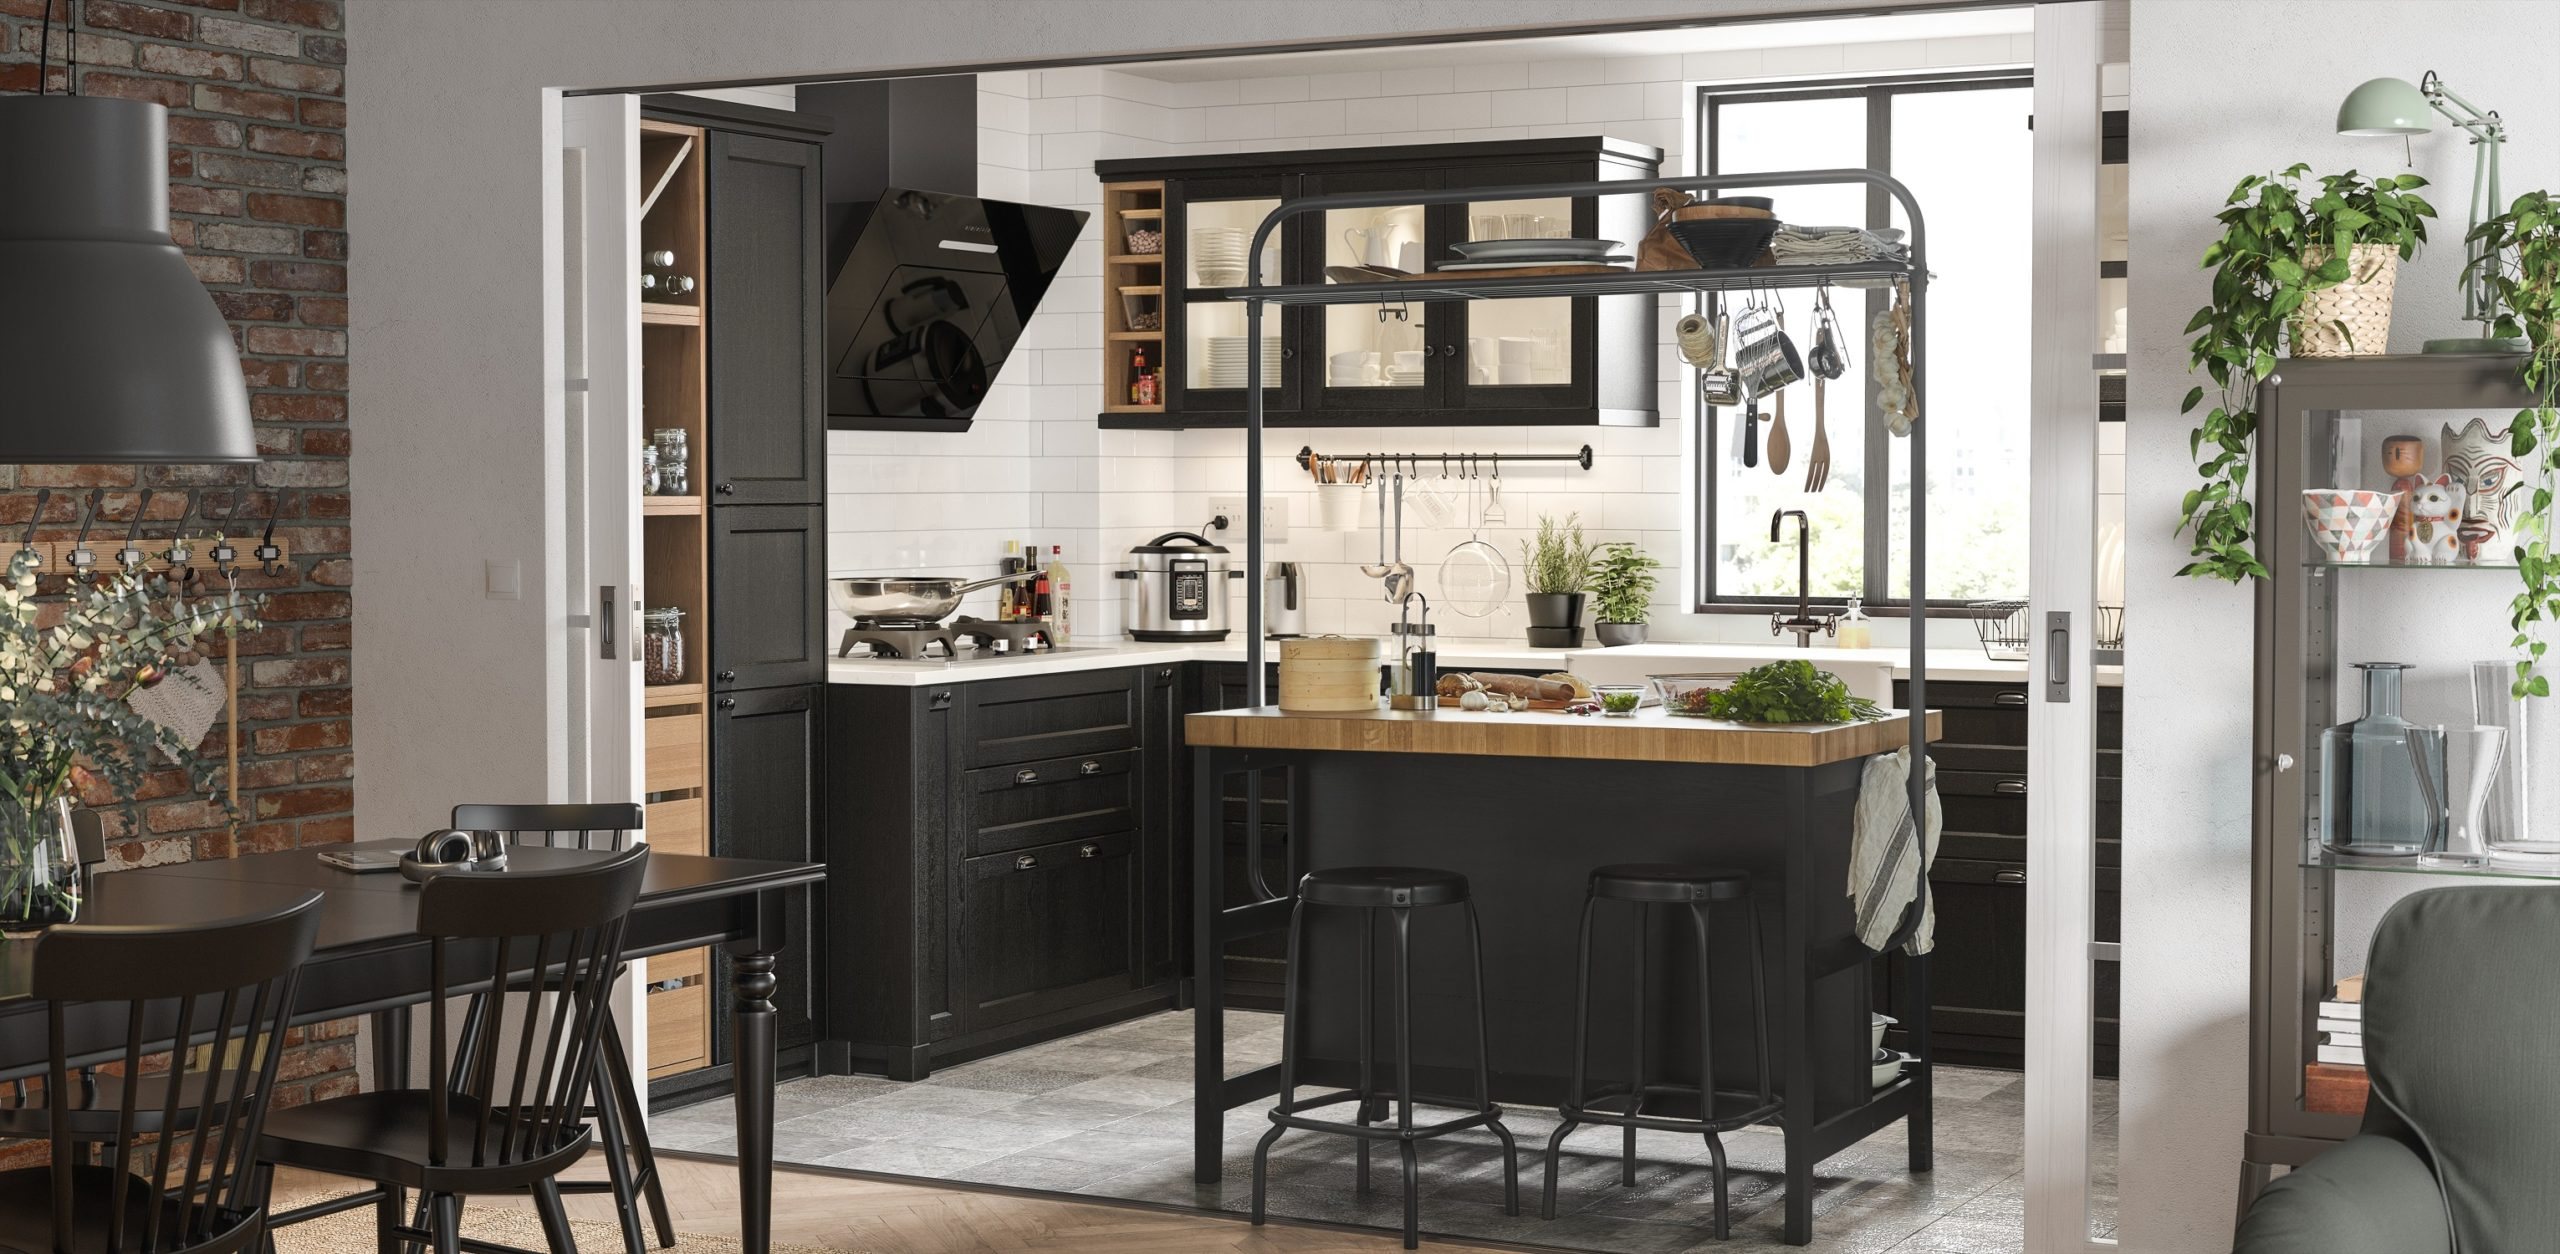 Ikea Launches Online Home Planning Interior Design Services Design Middle East